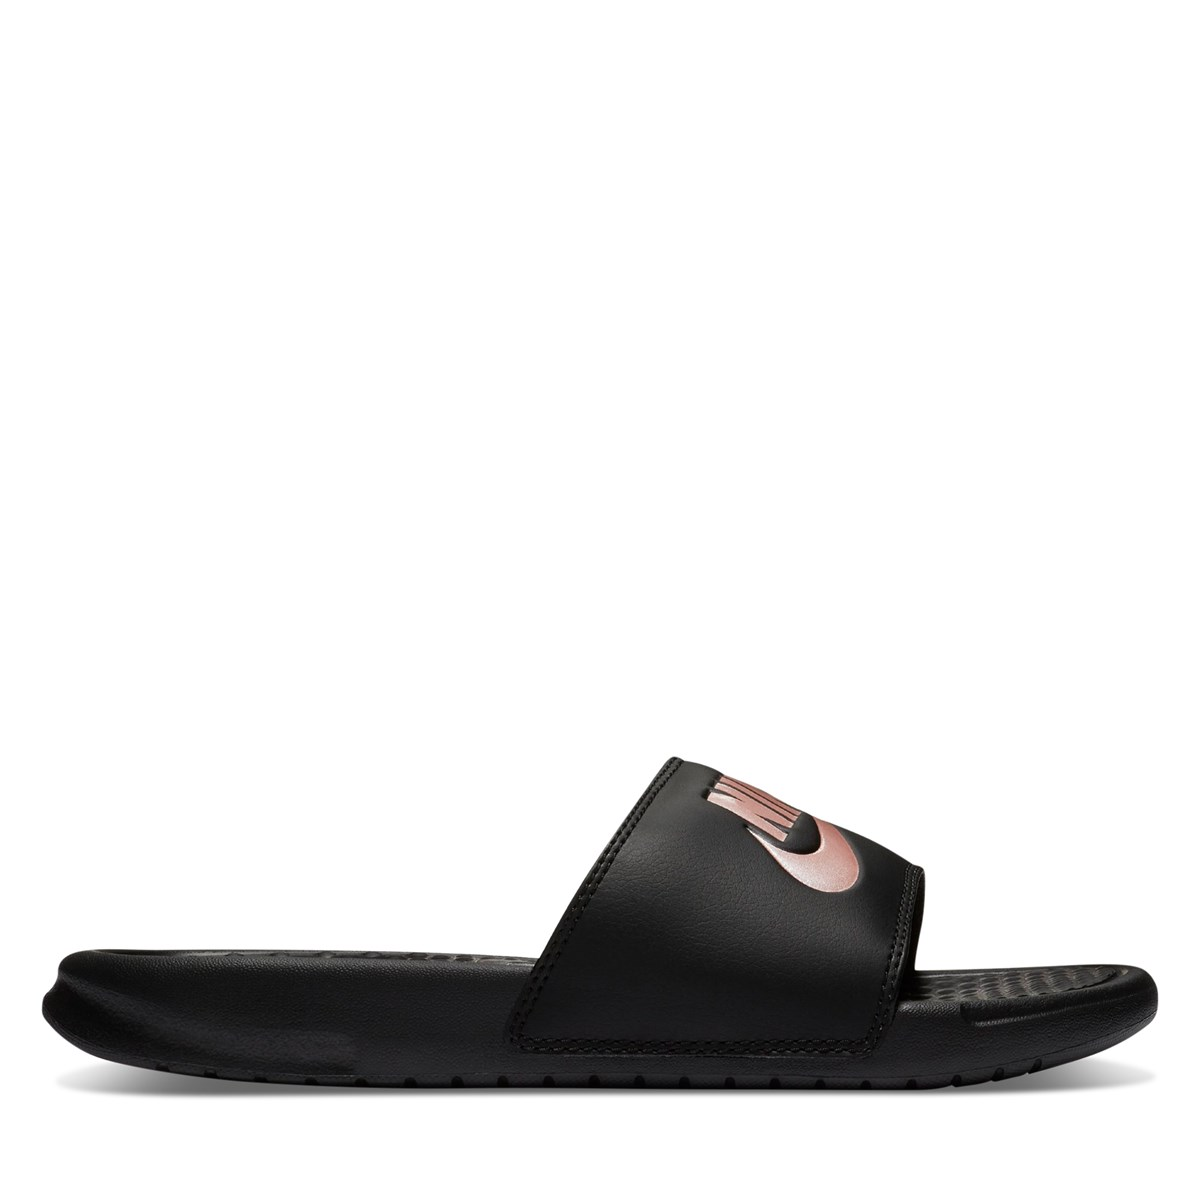 free shipping d865d 2d17c Women s Nike Benassi JDI Slide in Black. Previous. default view  ALT1  ALT2